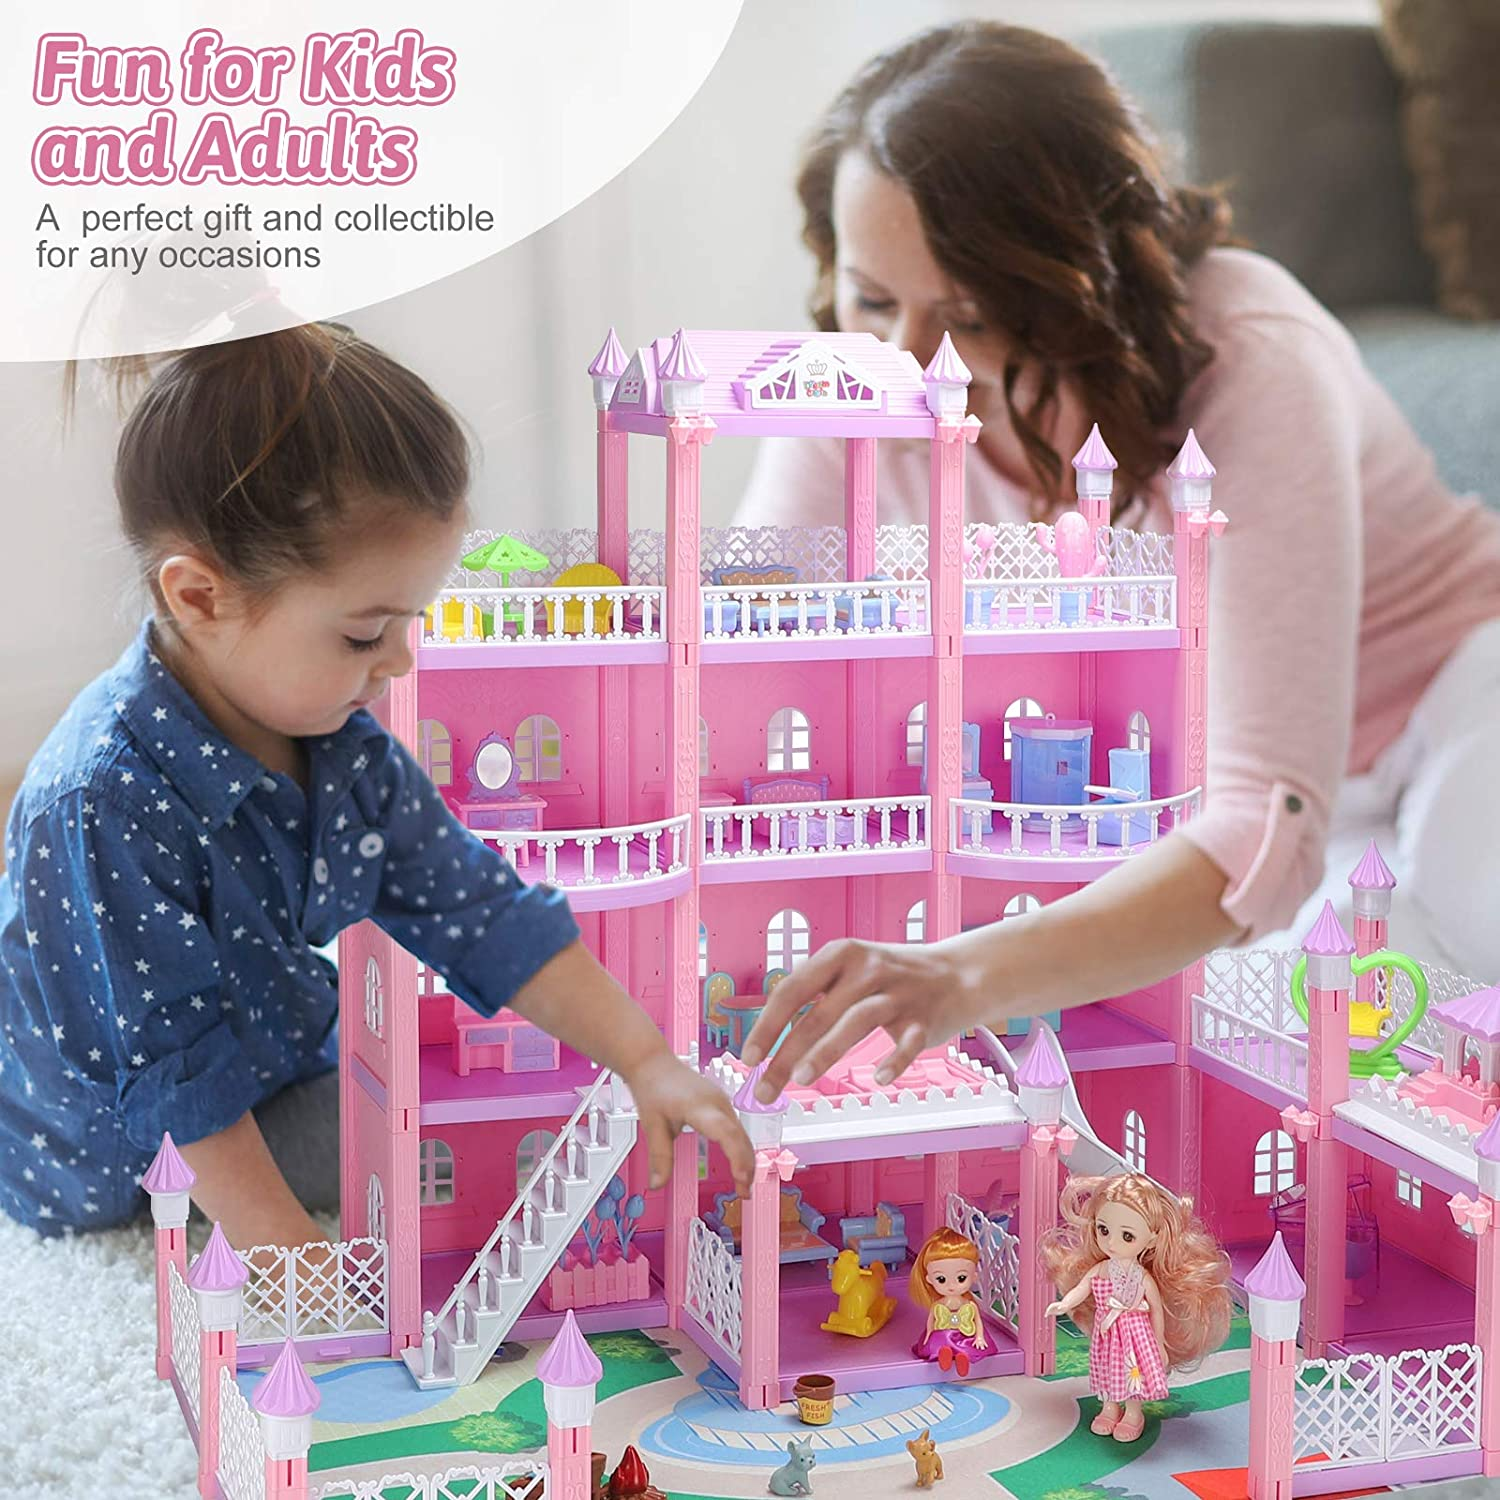 Pink Large 4 Storey DIY Building Toy Set Deluxe Villa Play House Pretend Toy Playset with Furniture Doll Accessories Doll House for Girls Open Sided Princess Castle Doll House for Ages 3+ Years